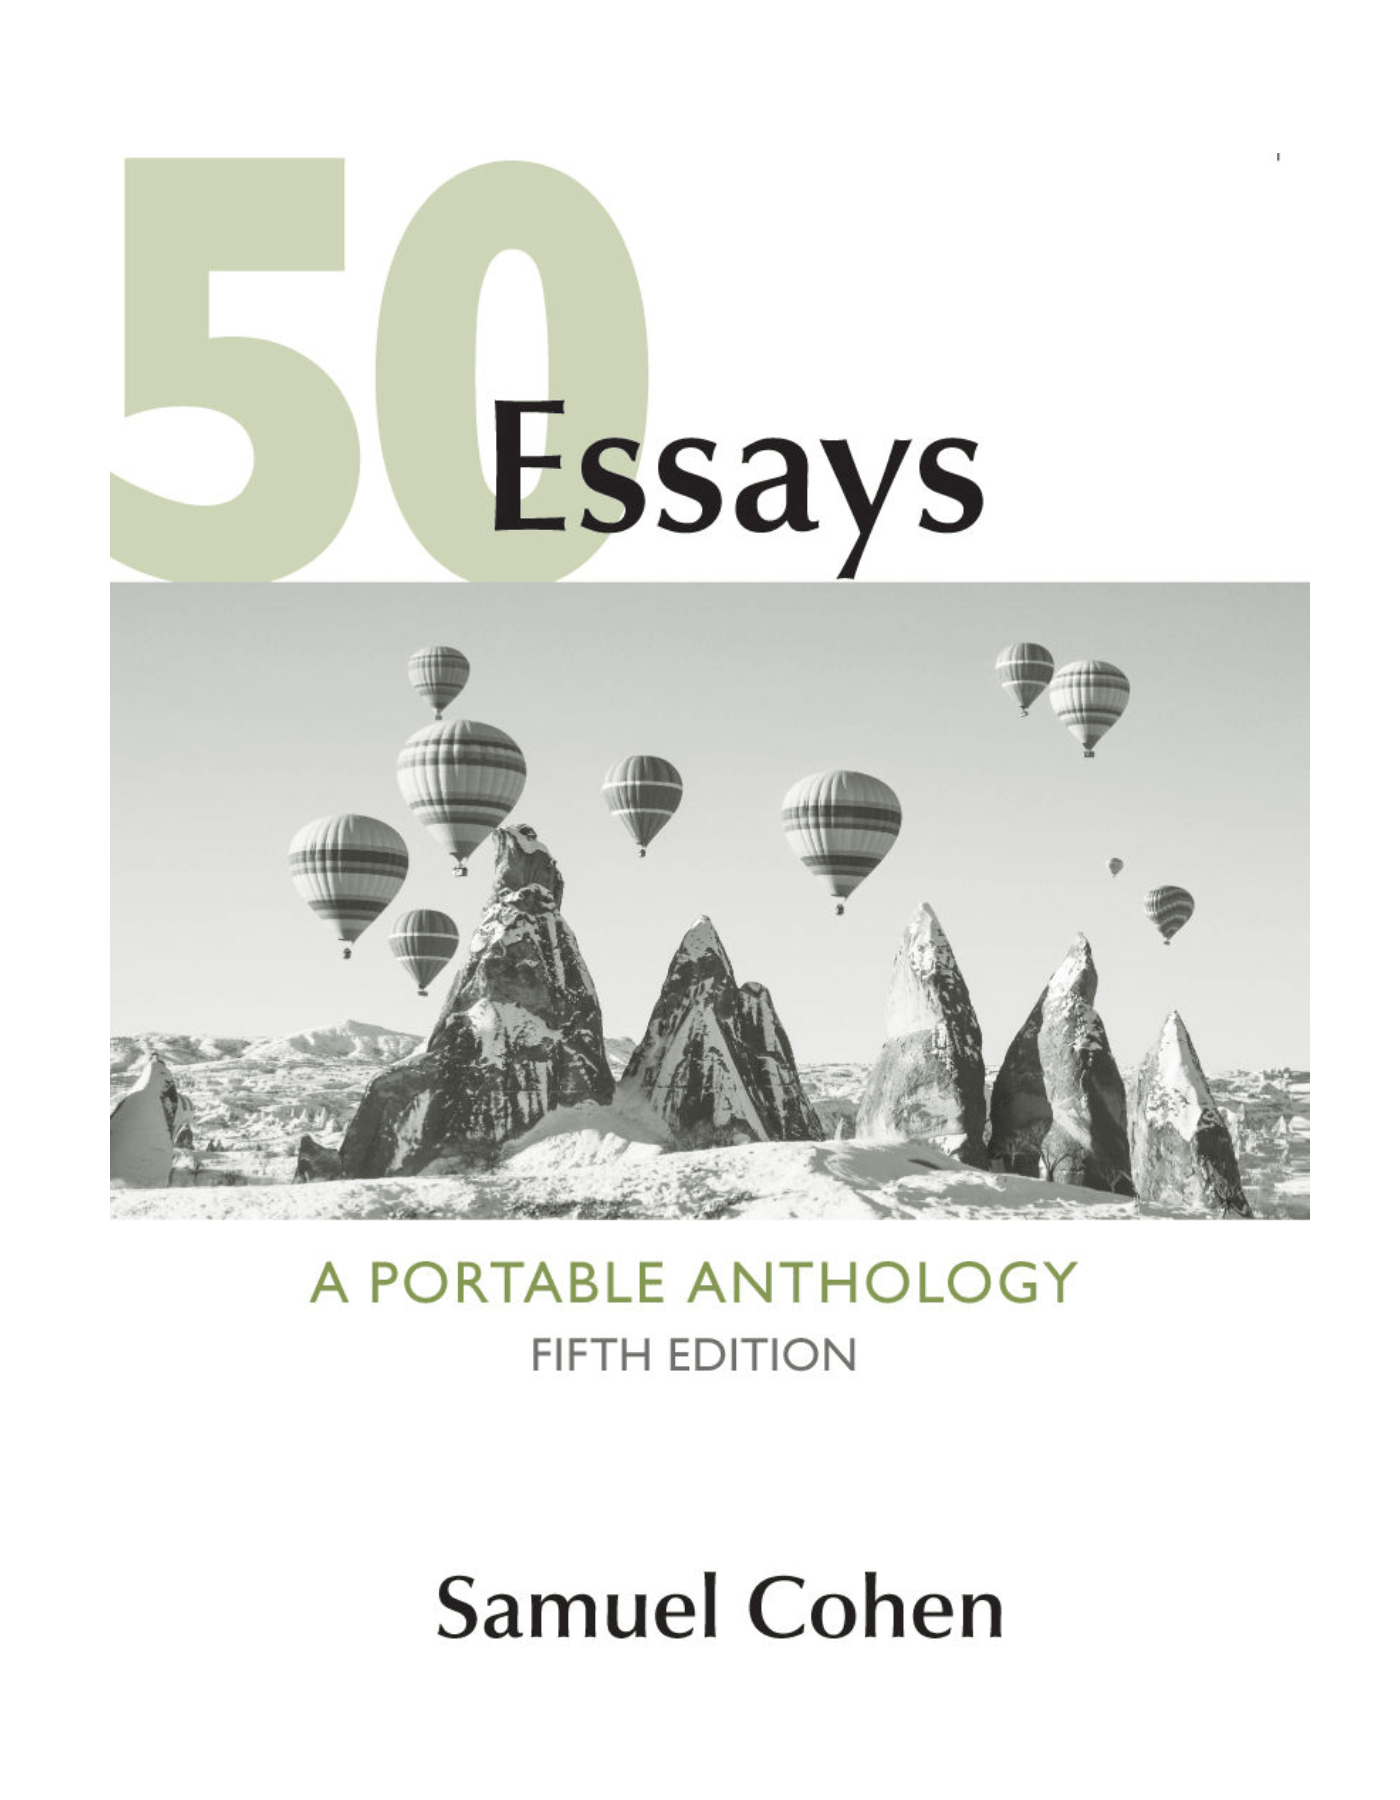 012 50fit14002c1800ssl1 Essay Example Essays Portable Anthology 4th Edition Awful 50 A Pdf Free Full